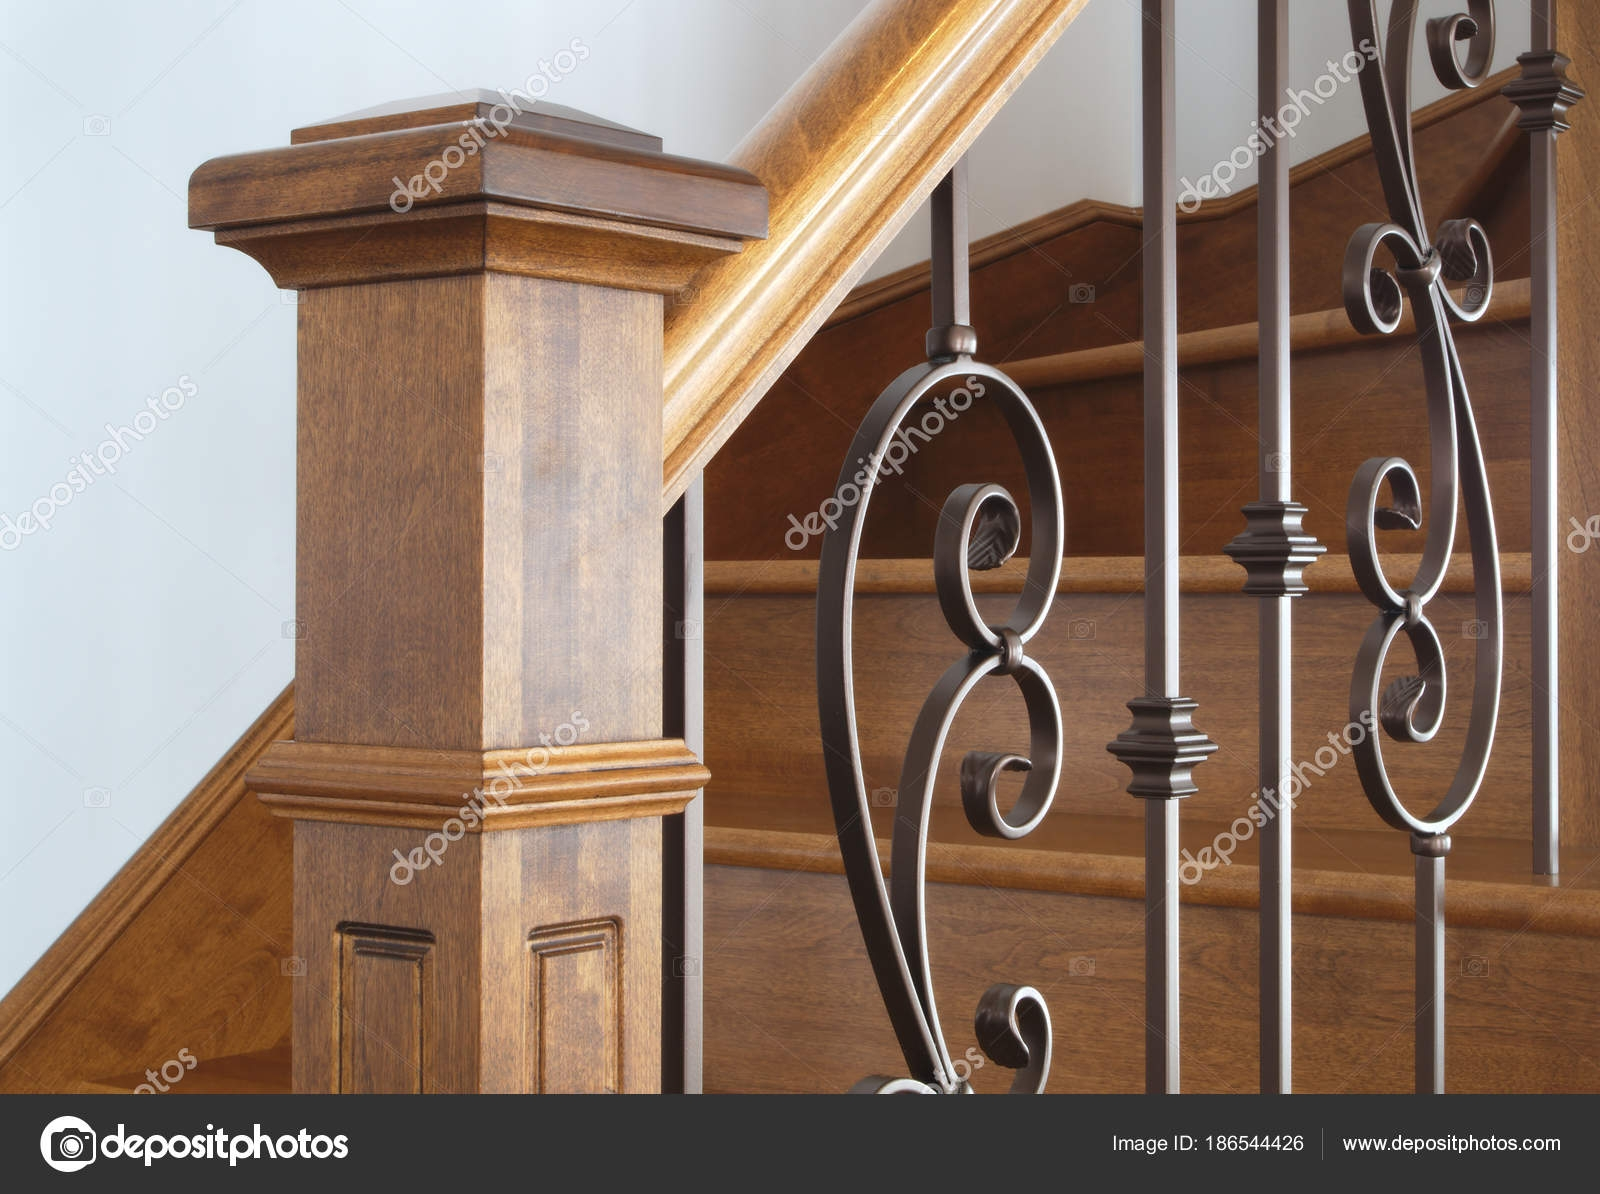 Pictures Wooden Handrails Wood Stairs Newel Handrail Staircase | Wooden Handrails For Steps | Iron | Different Kind Wood | Wood Patio | Rustic | Staircase Wooden